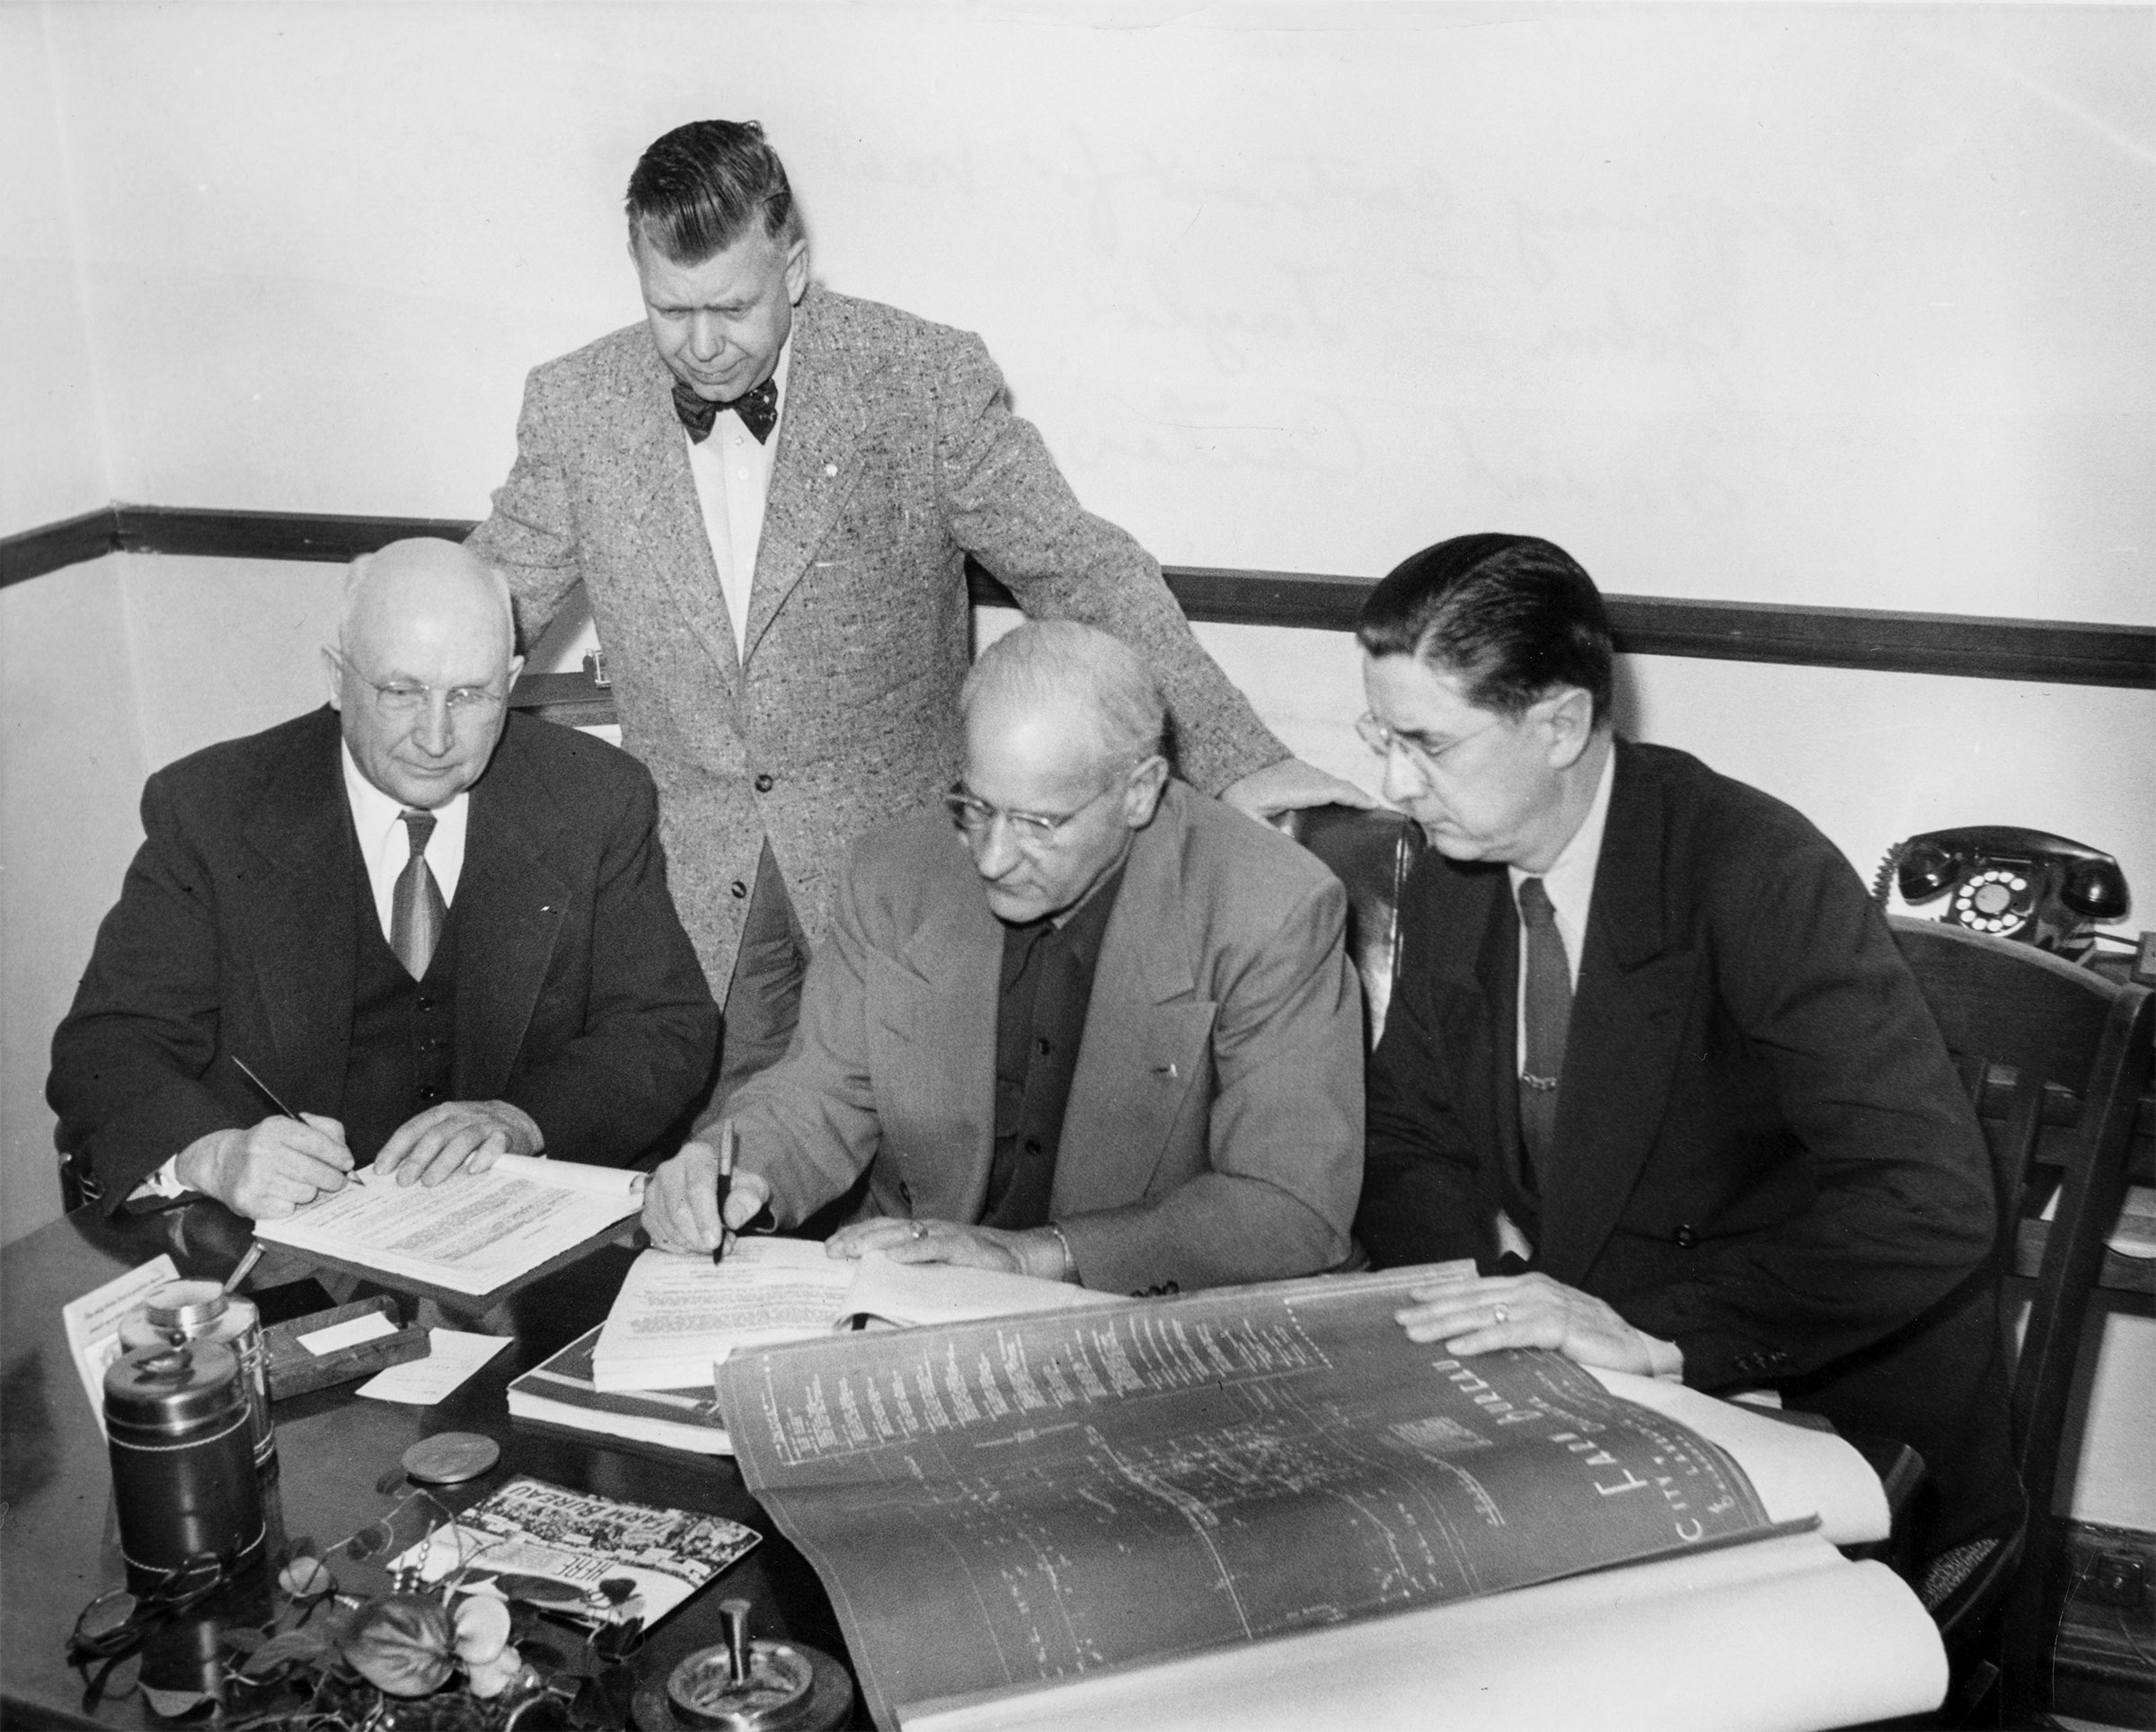 Oklahoma Farm Bureau recognized the need for a larger building to house the ever-expanding organization. On February 9, 1953, a contract was signed for construction of a new building near the Oklahoma State Capitol. Here, OKFB President John I. Taylor (seated center) signs the contract, while Charles M. Suttle, the contractor (left), signs another copy. Frank Carter (standing) and Martin Lawrence, architect, look on.